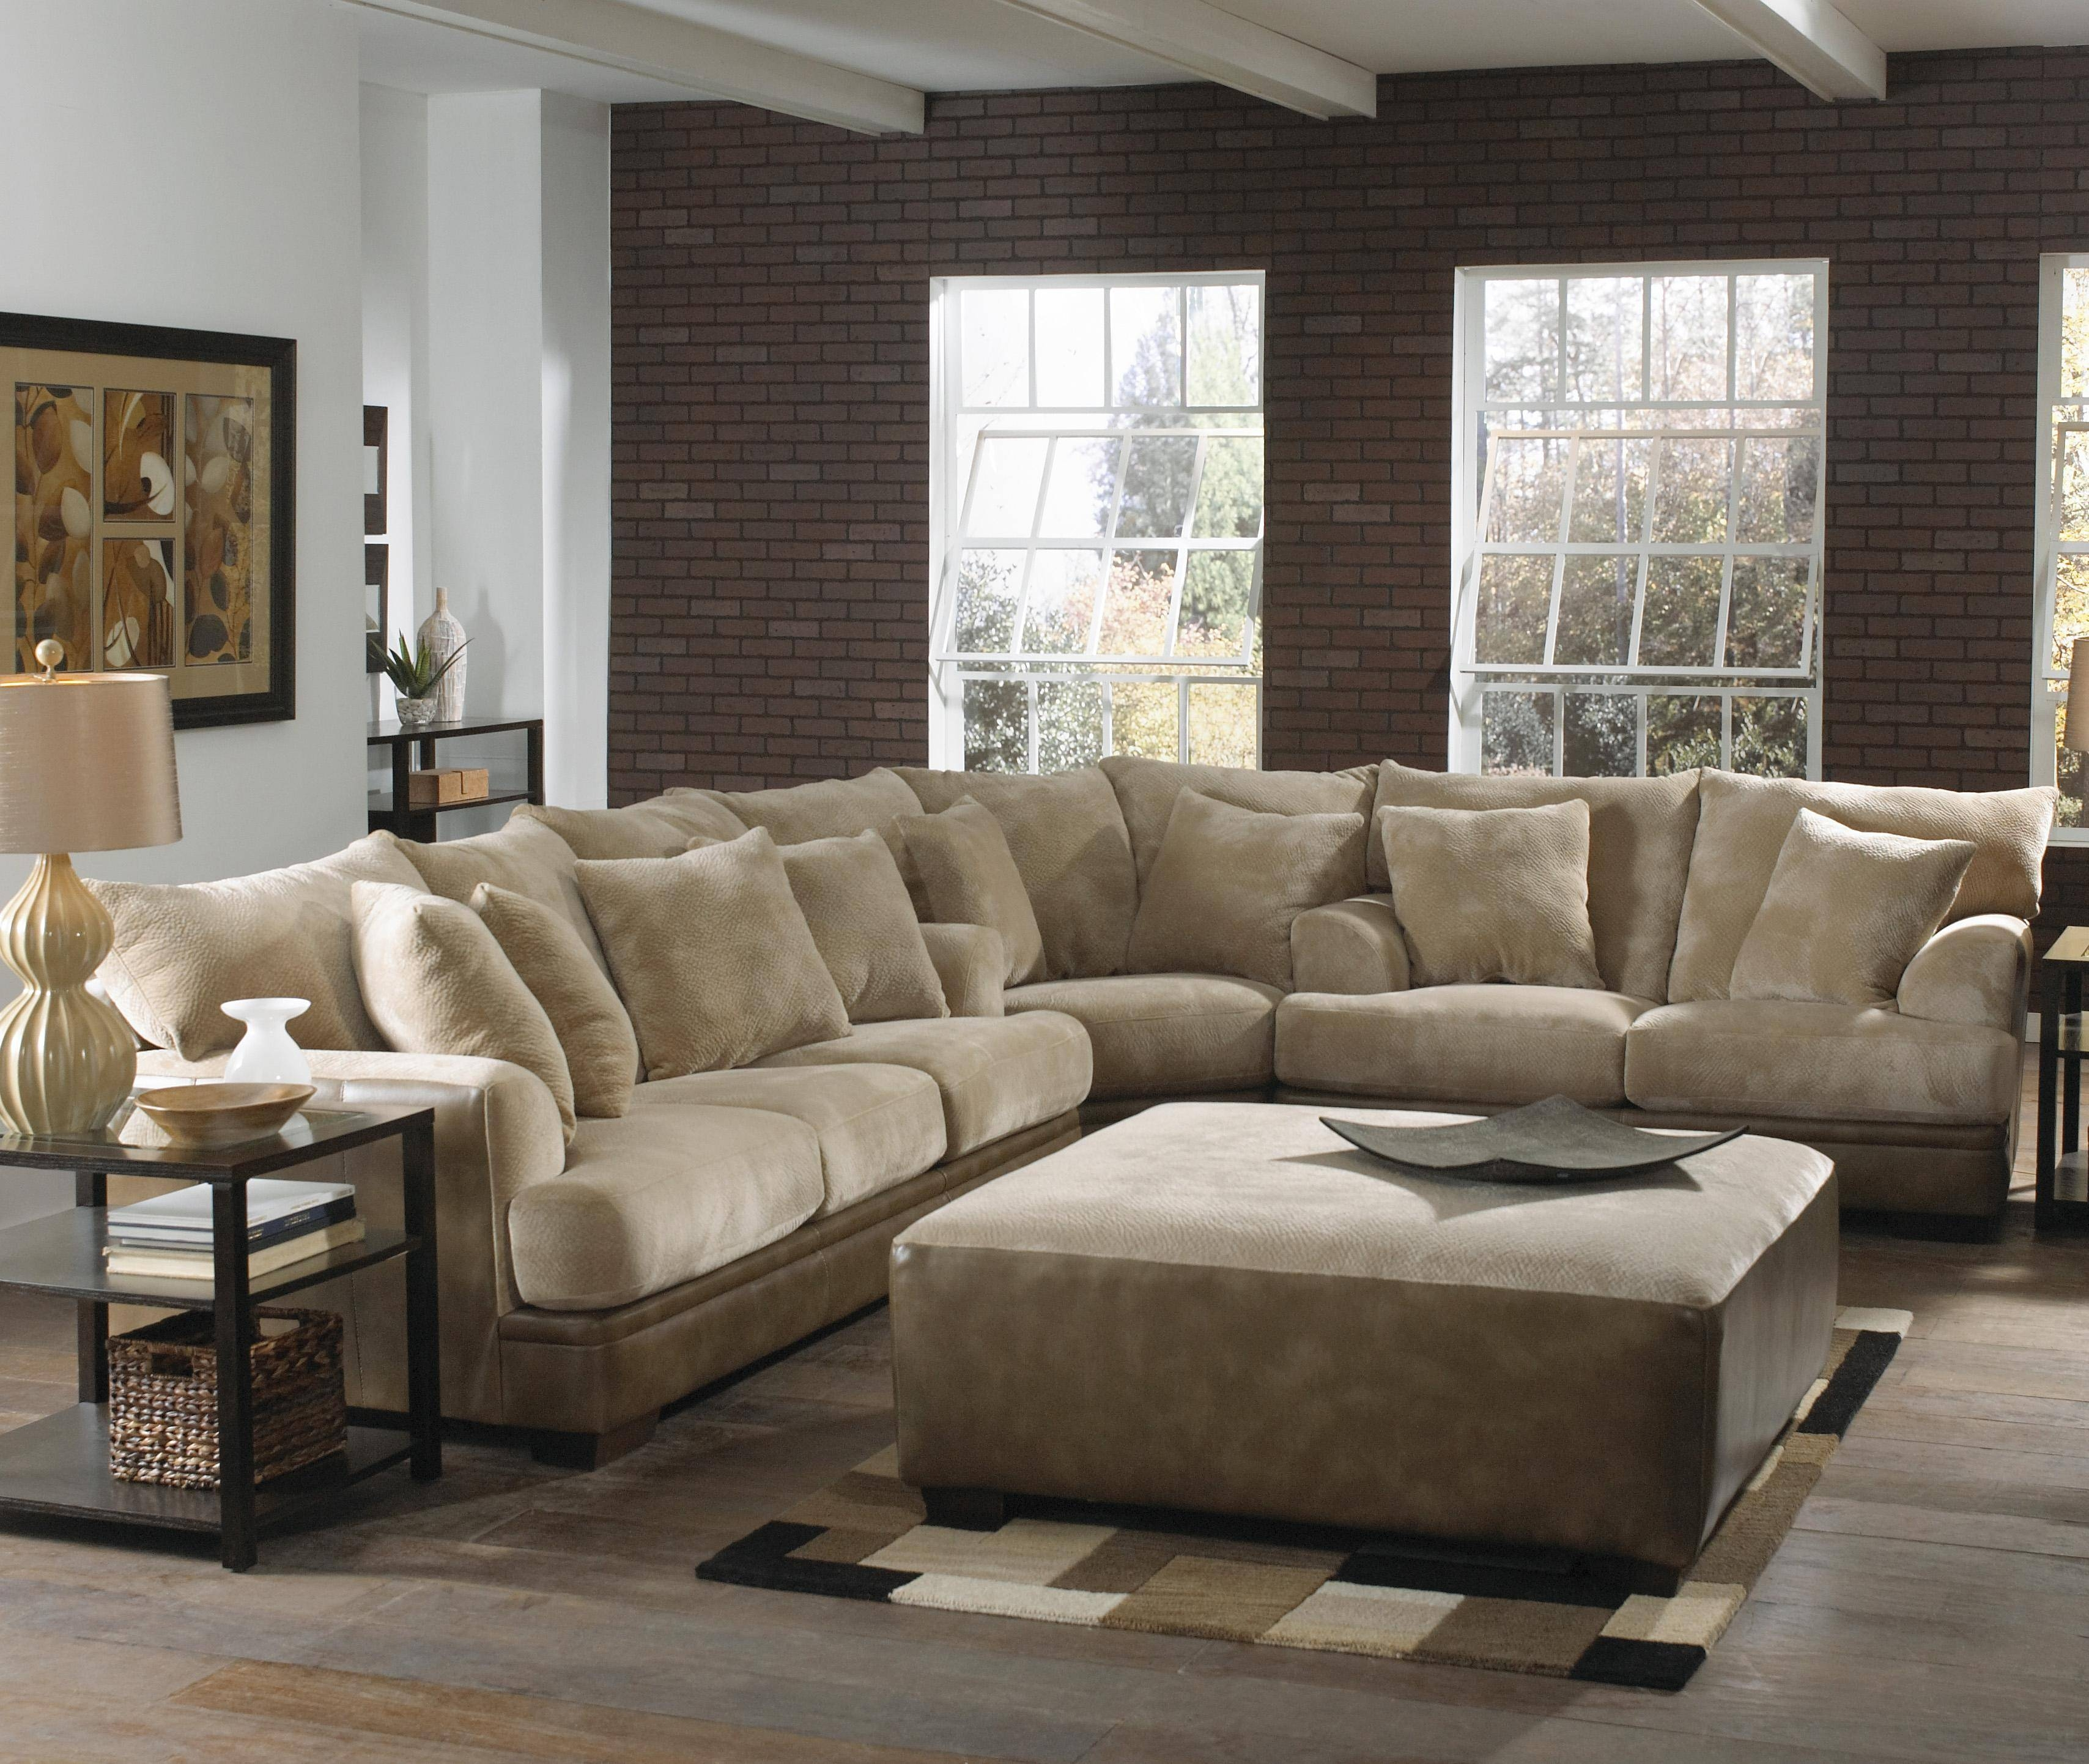 Furniture: Add Elegance And Style To Your Home With Extra Large regarding Extra Large Leather Sectional Sofas (Image 7 of 15)